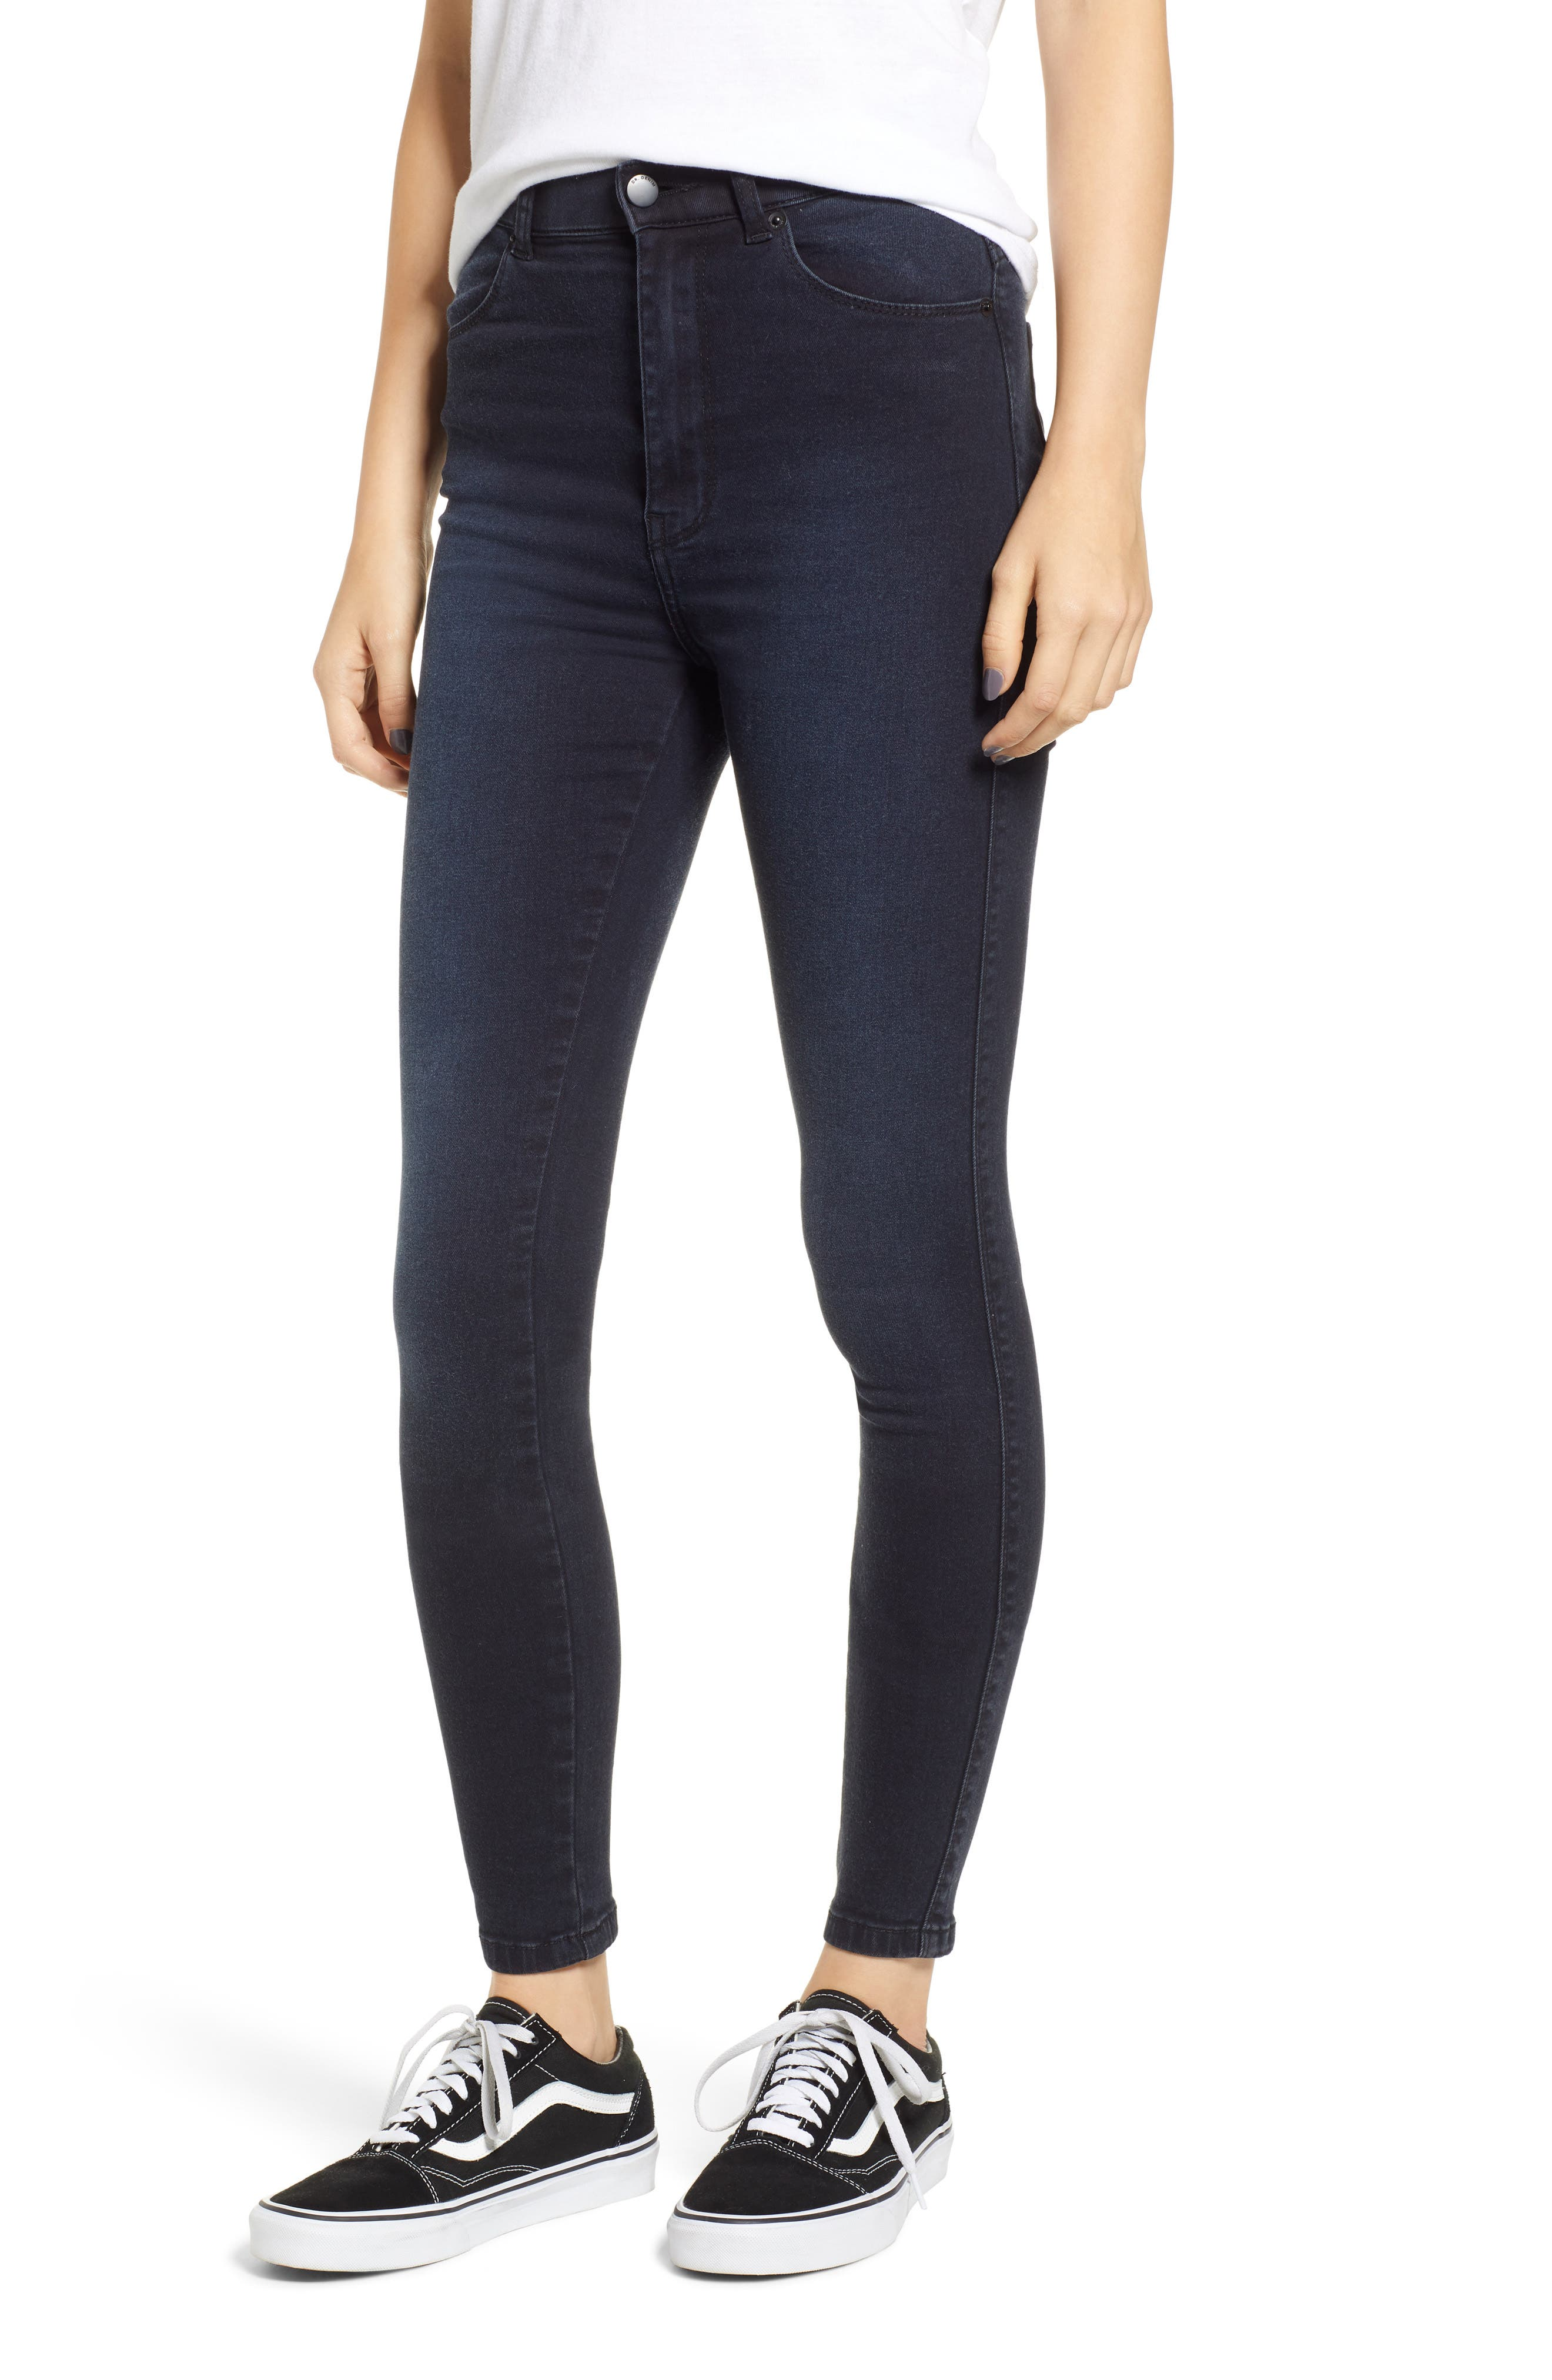 Moxy Skinny Jeans,                             Main thumbnail 1, color,                             PITCH DARK BLUE